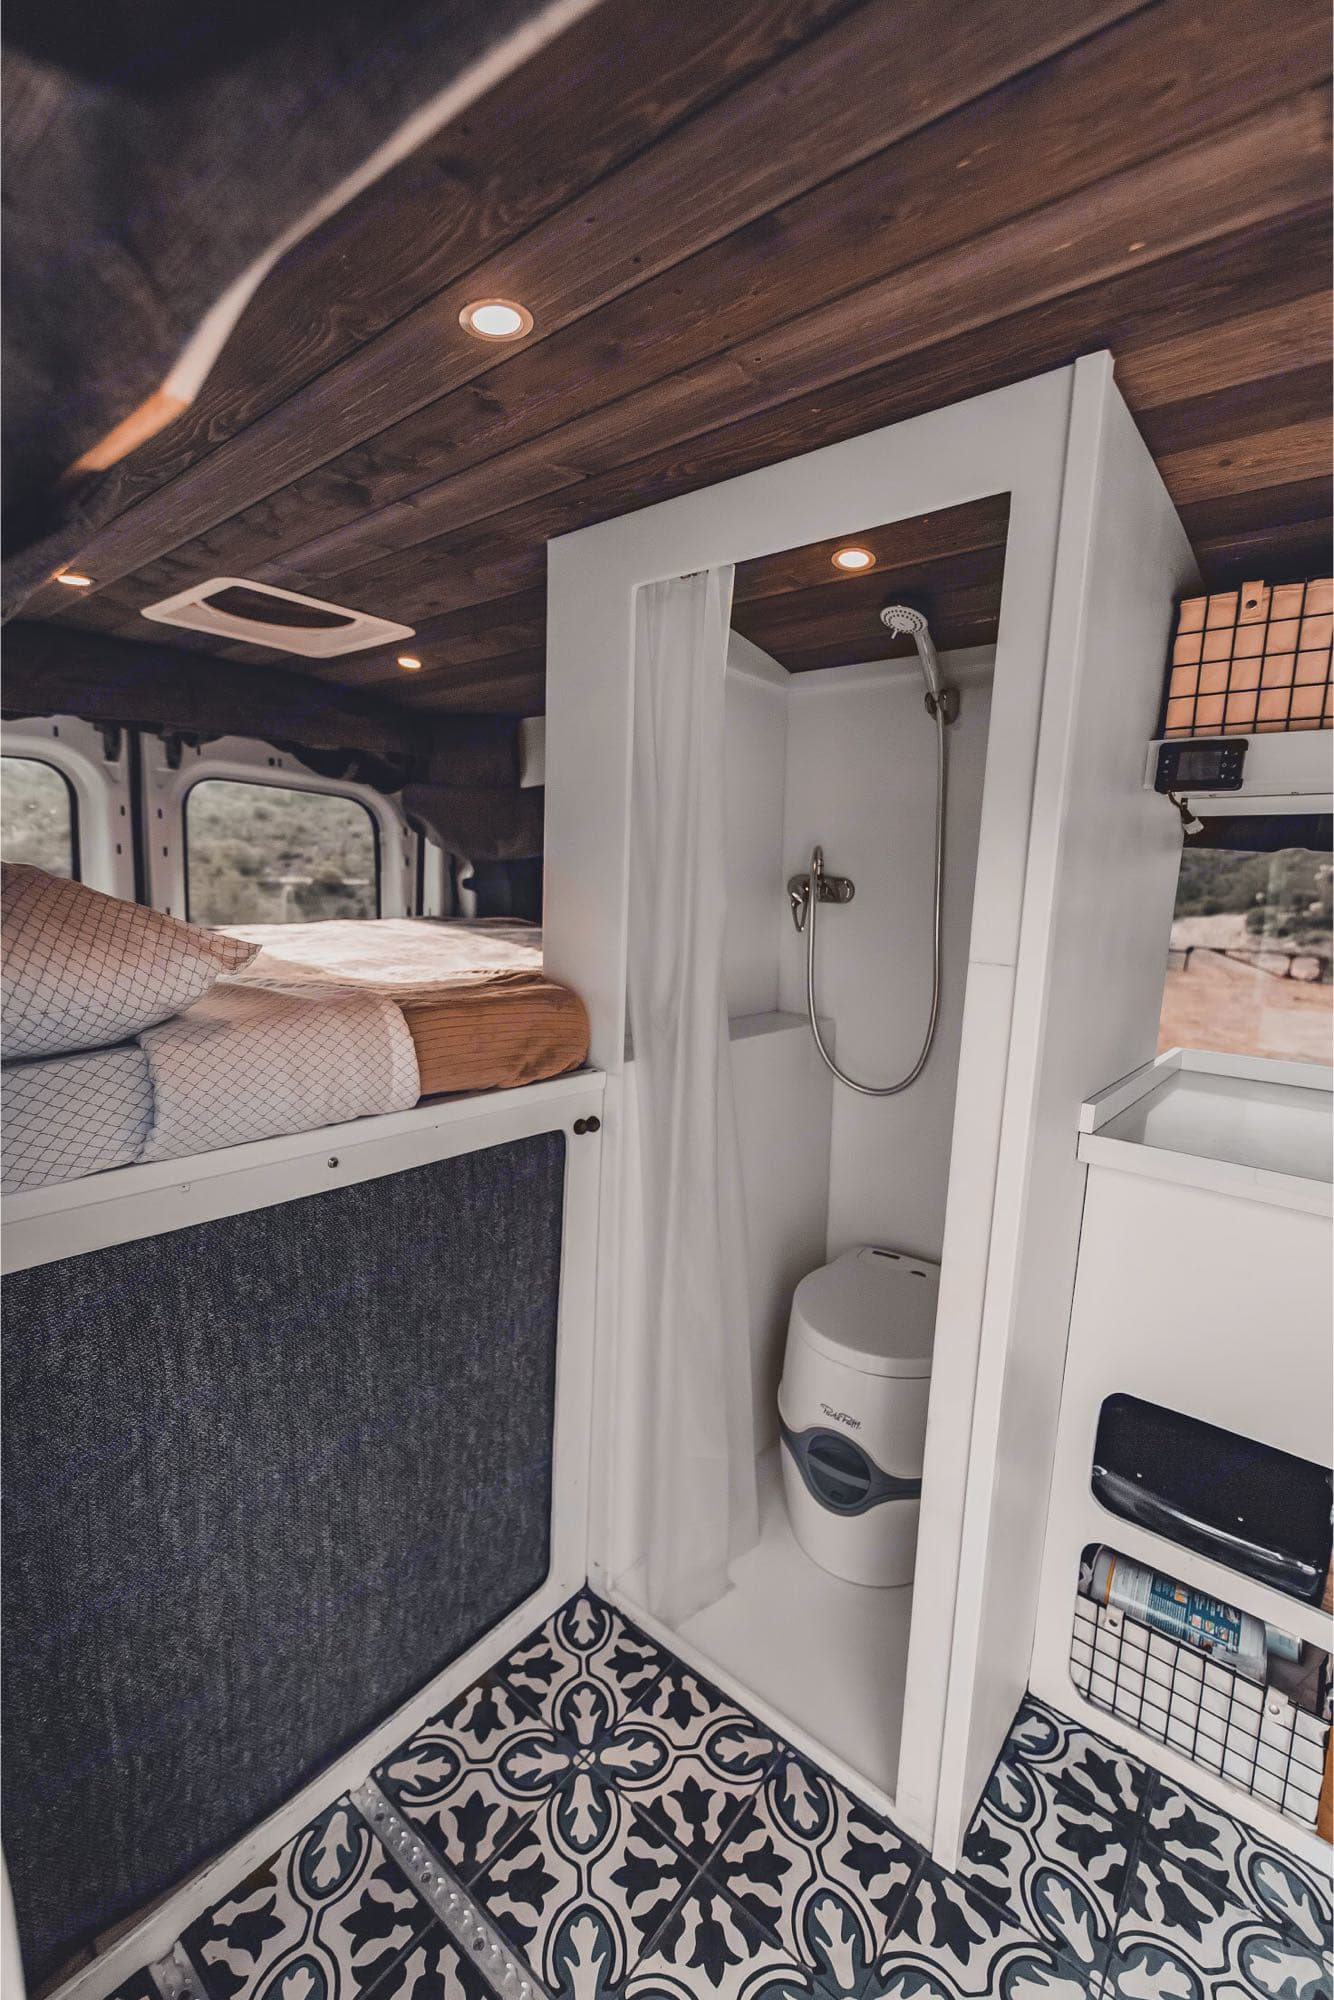 Toilet is removable for more shower space. Ford Transit 2015